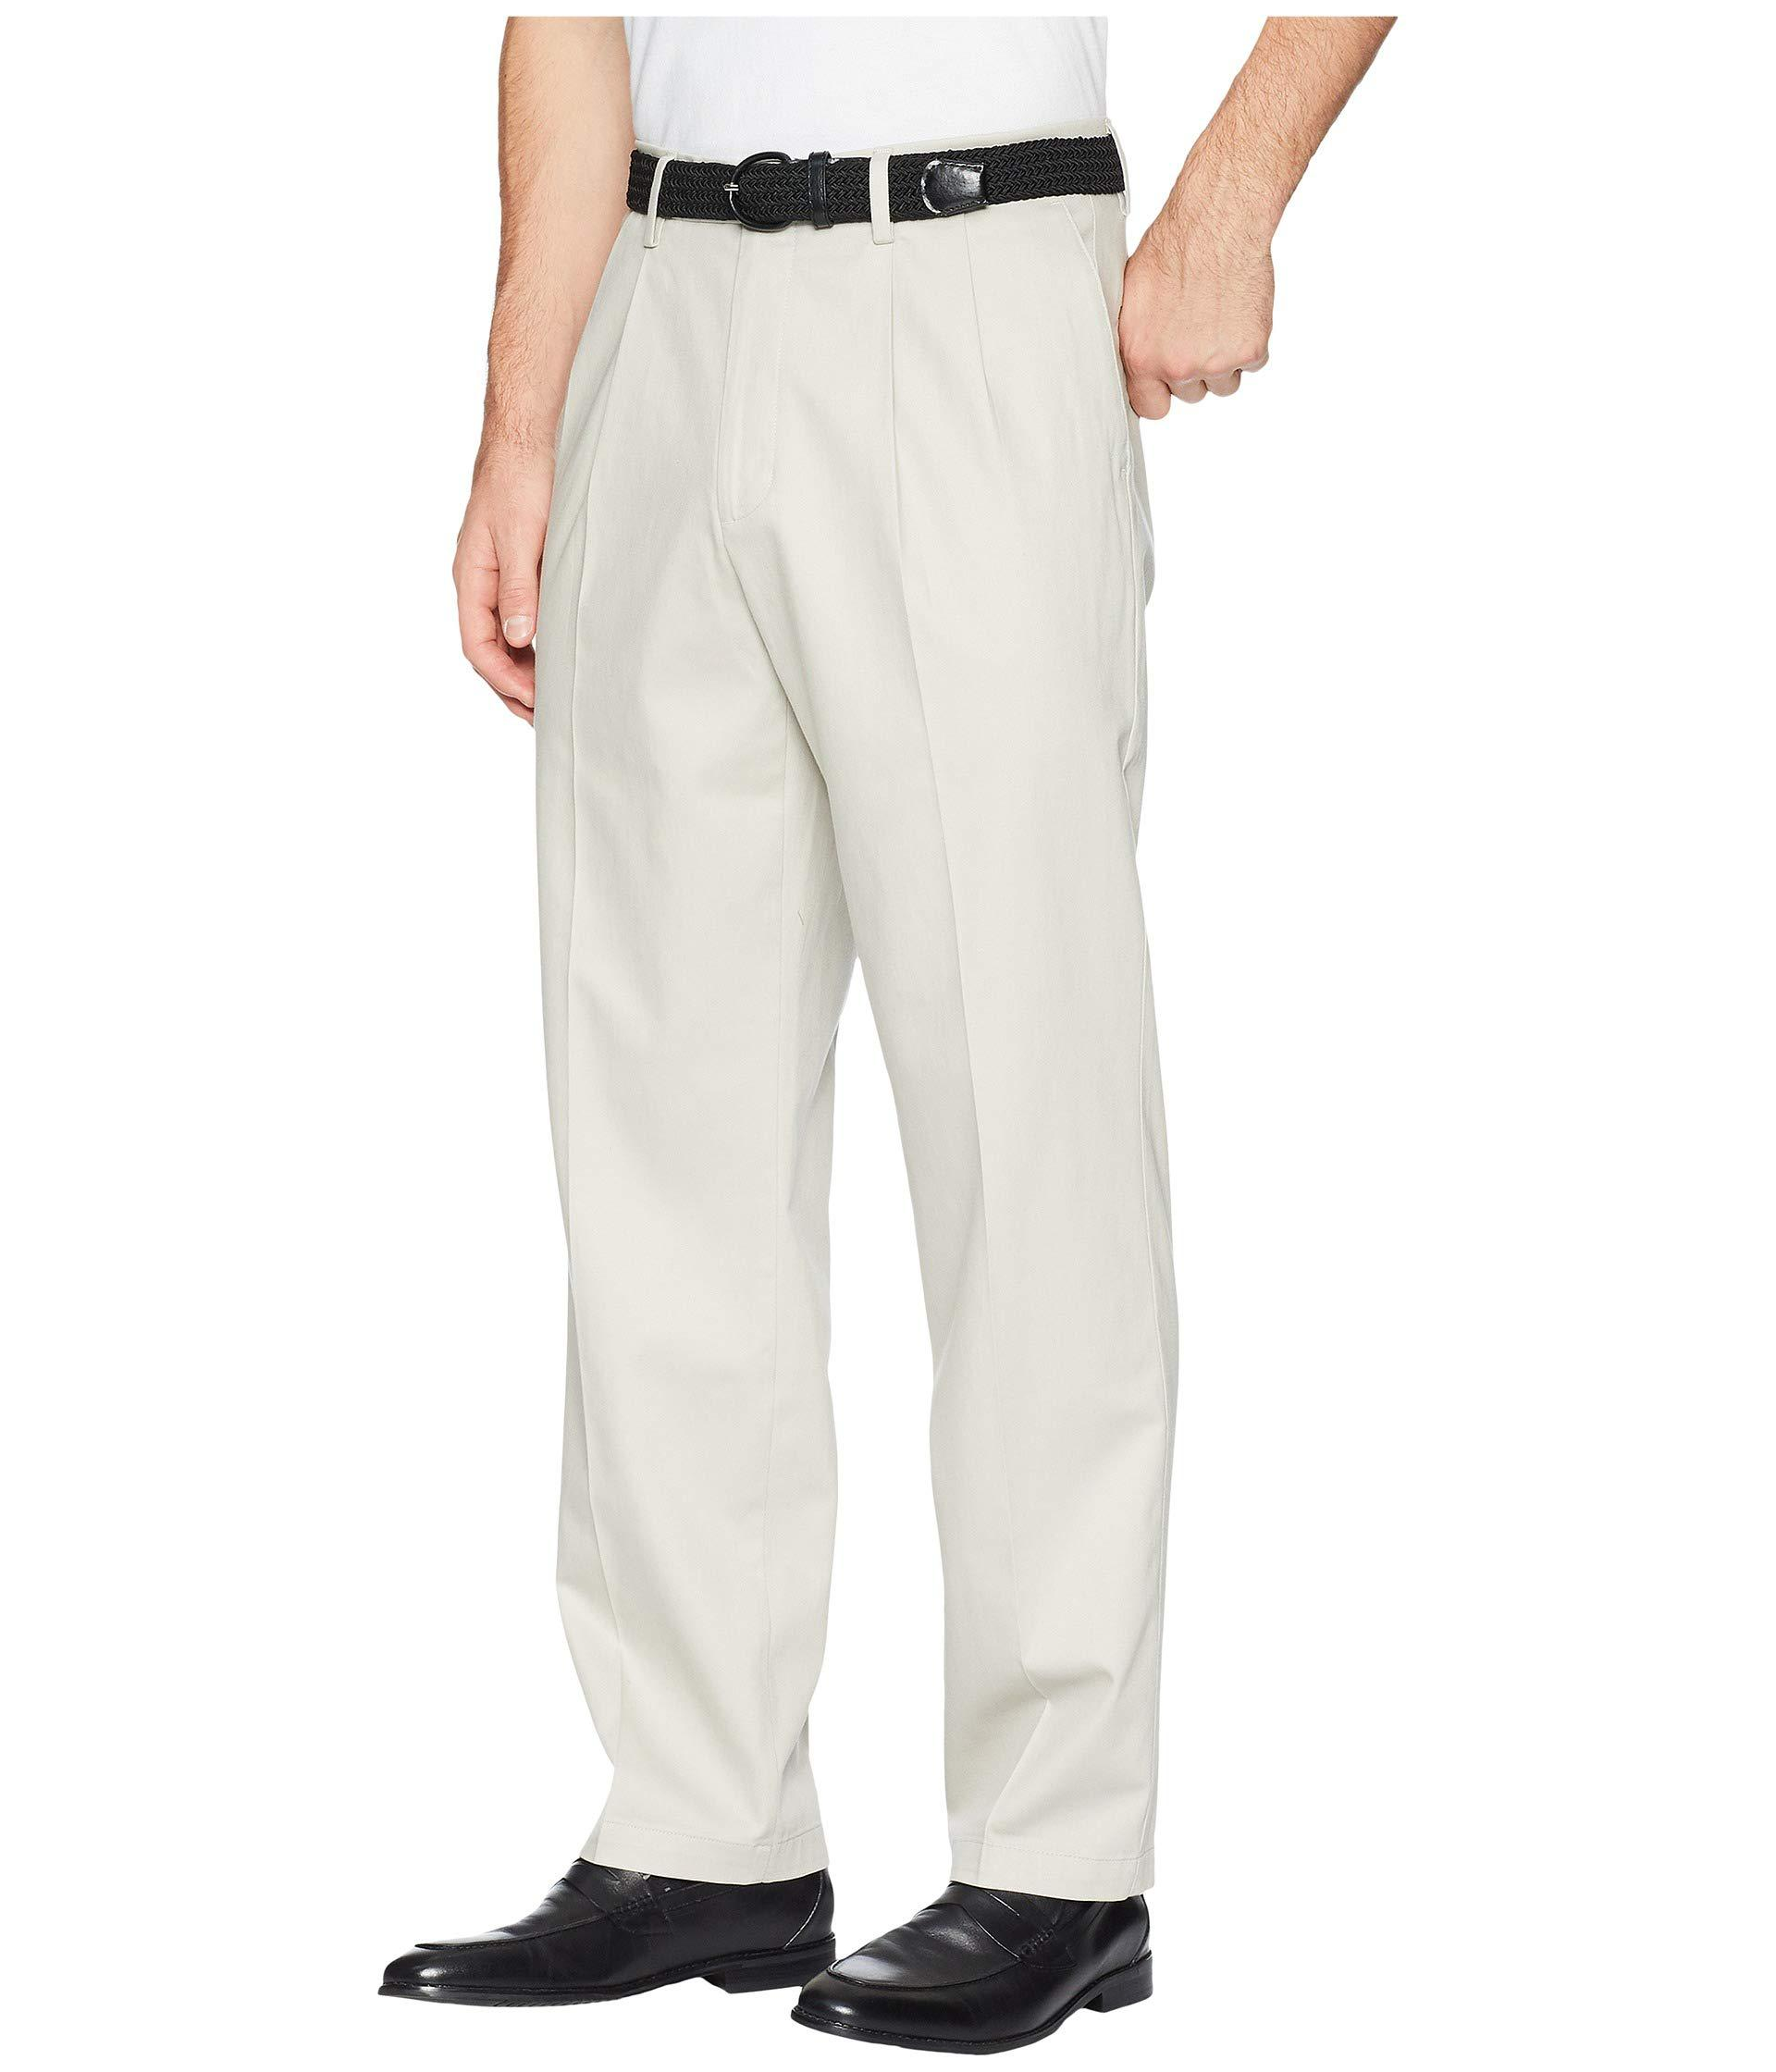 e9415b2d Lyst - Dockers Classic Fit Signature Khaki Lux Cotton Stretch Pants D3 -  Pleated ( Navy) Men's Casual Pants in Natural for Men